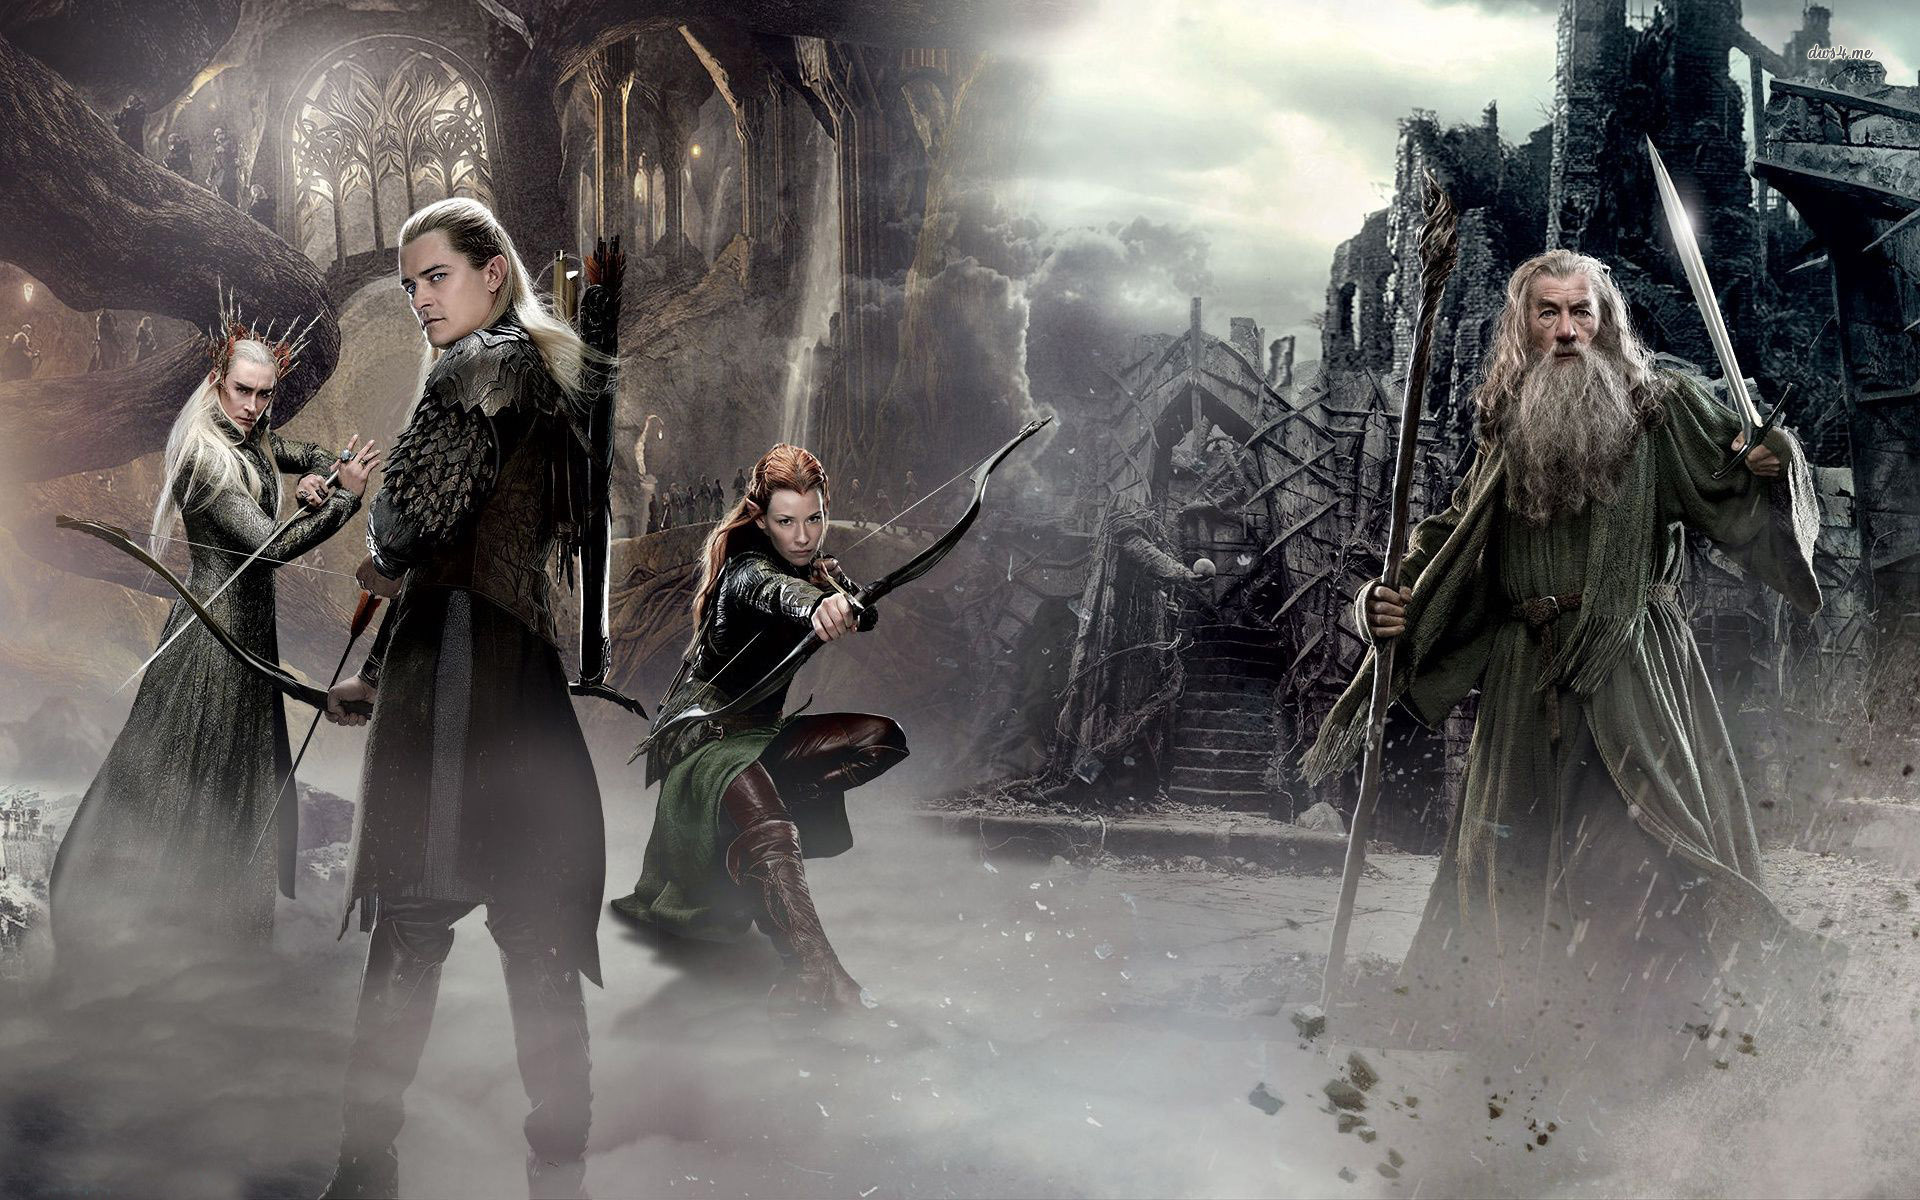 The Hobbit   The Desolation of Smaug wallpaper   Movie wallpapers 1920x1200